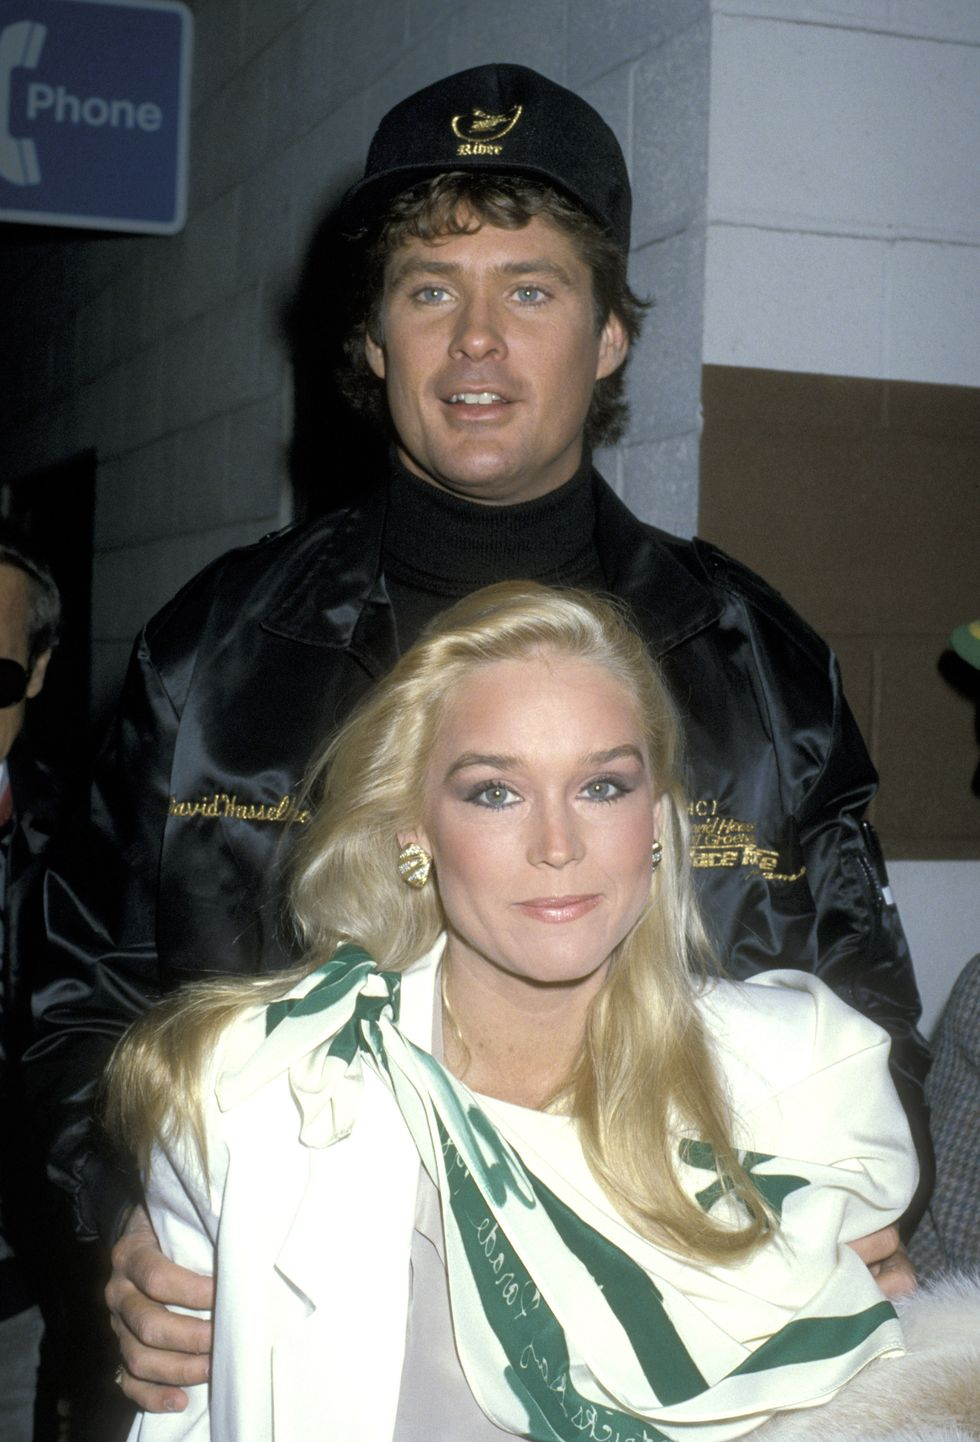 David Hasselhoff and Catherine Hickland during the 1986 St. Patricks Day Parade in Beverly Hills, CA.